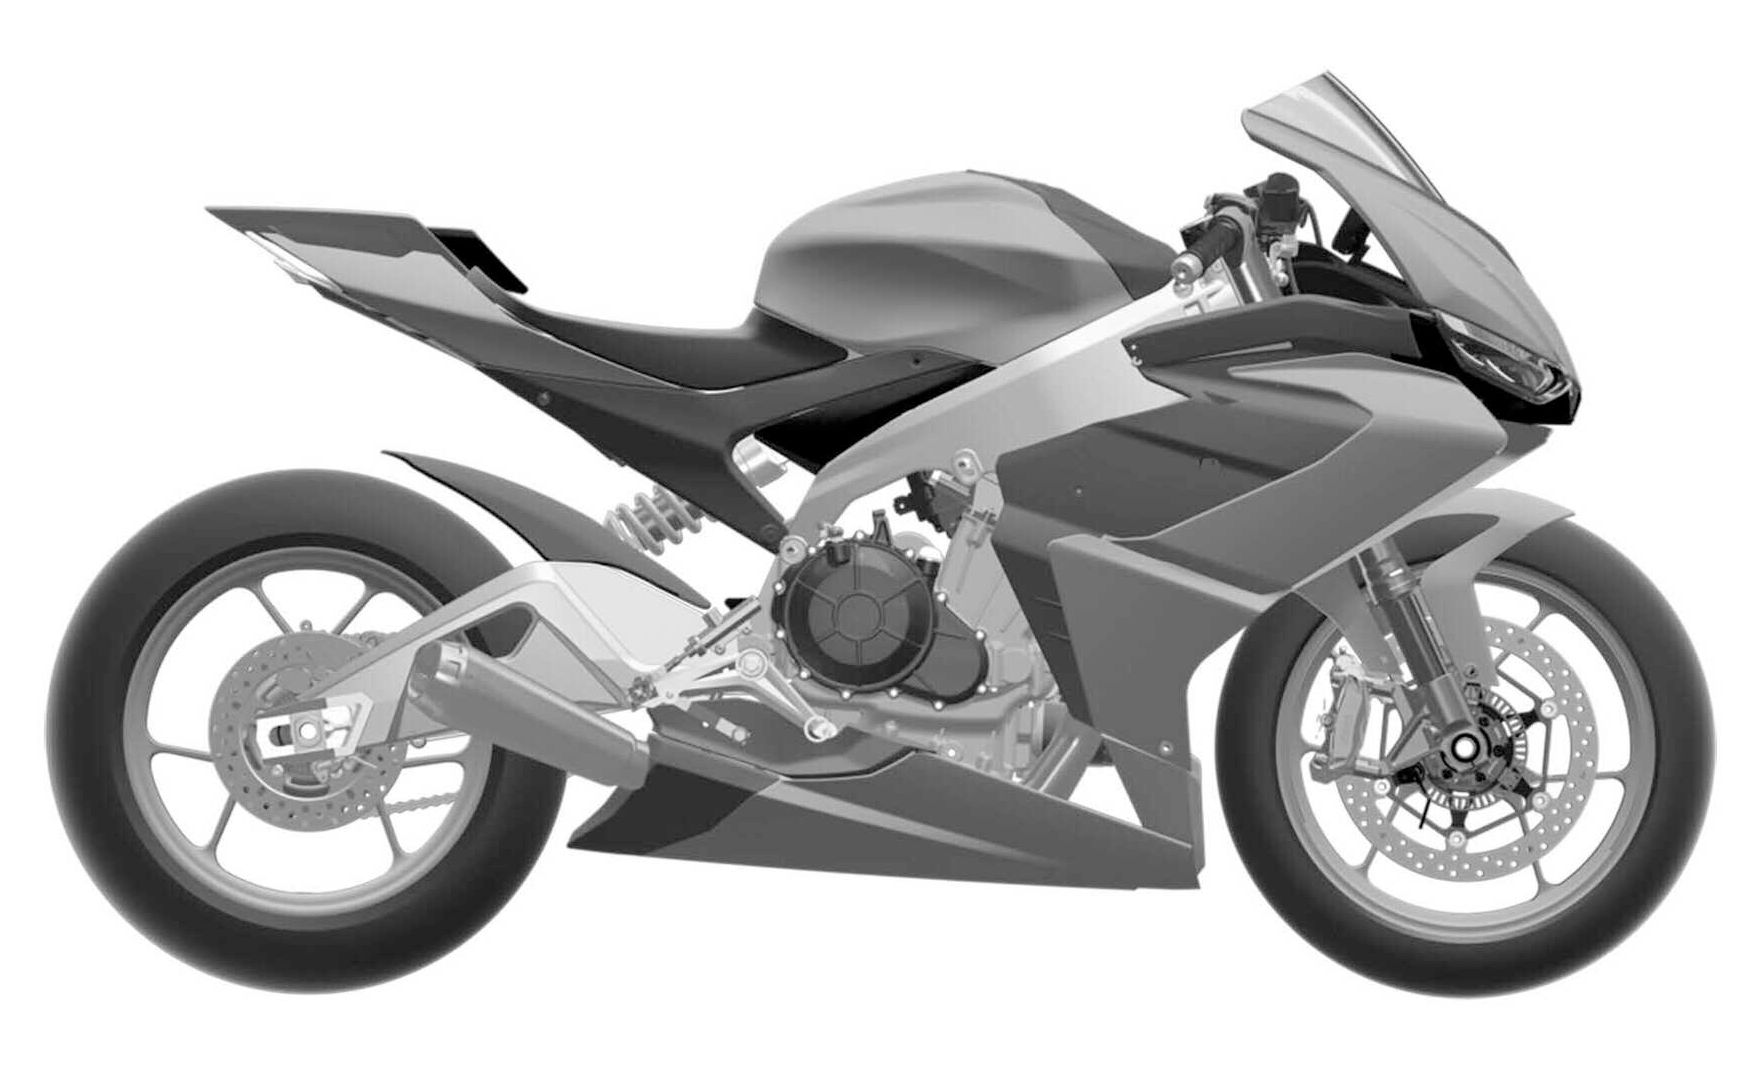 053019 2020 aprilia rs660 concept design comparison 2 copy